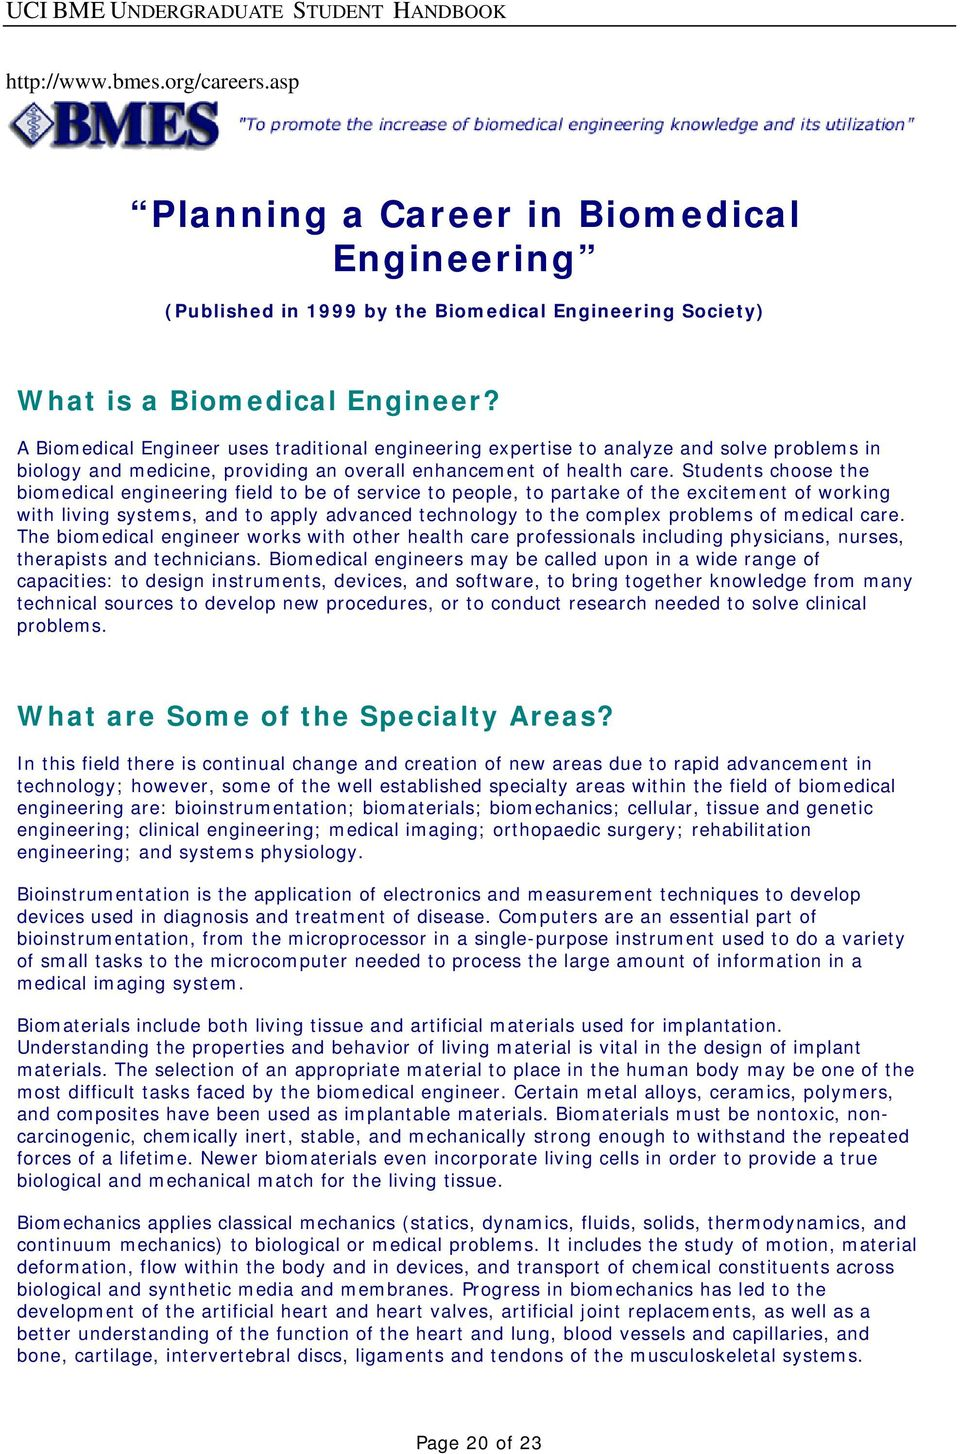 Students choose the biomedical engineering field to be of service to people, to partake of the excitement of working with living systems, and to apply advanced technology to the complex problems of